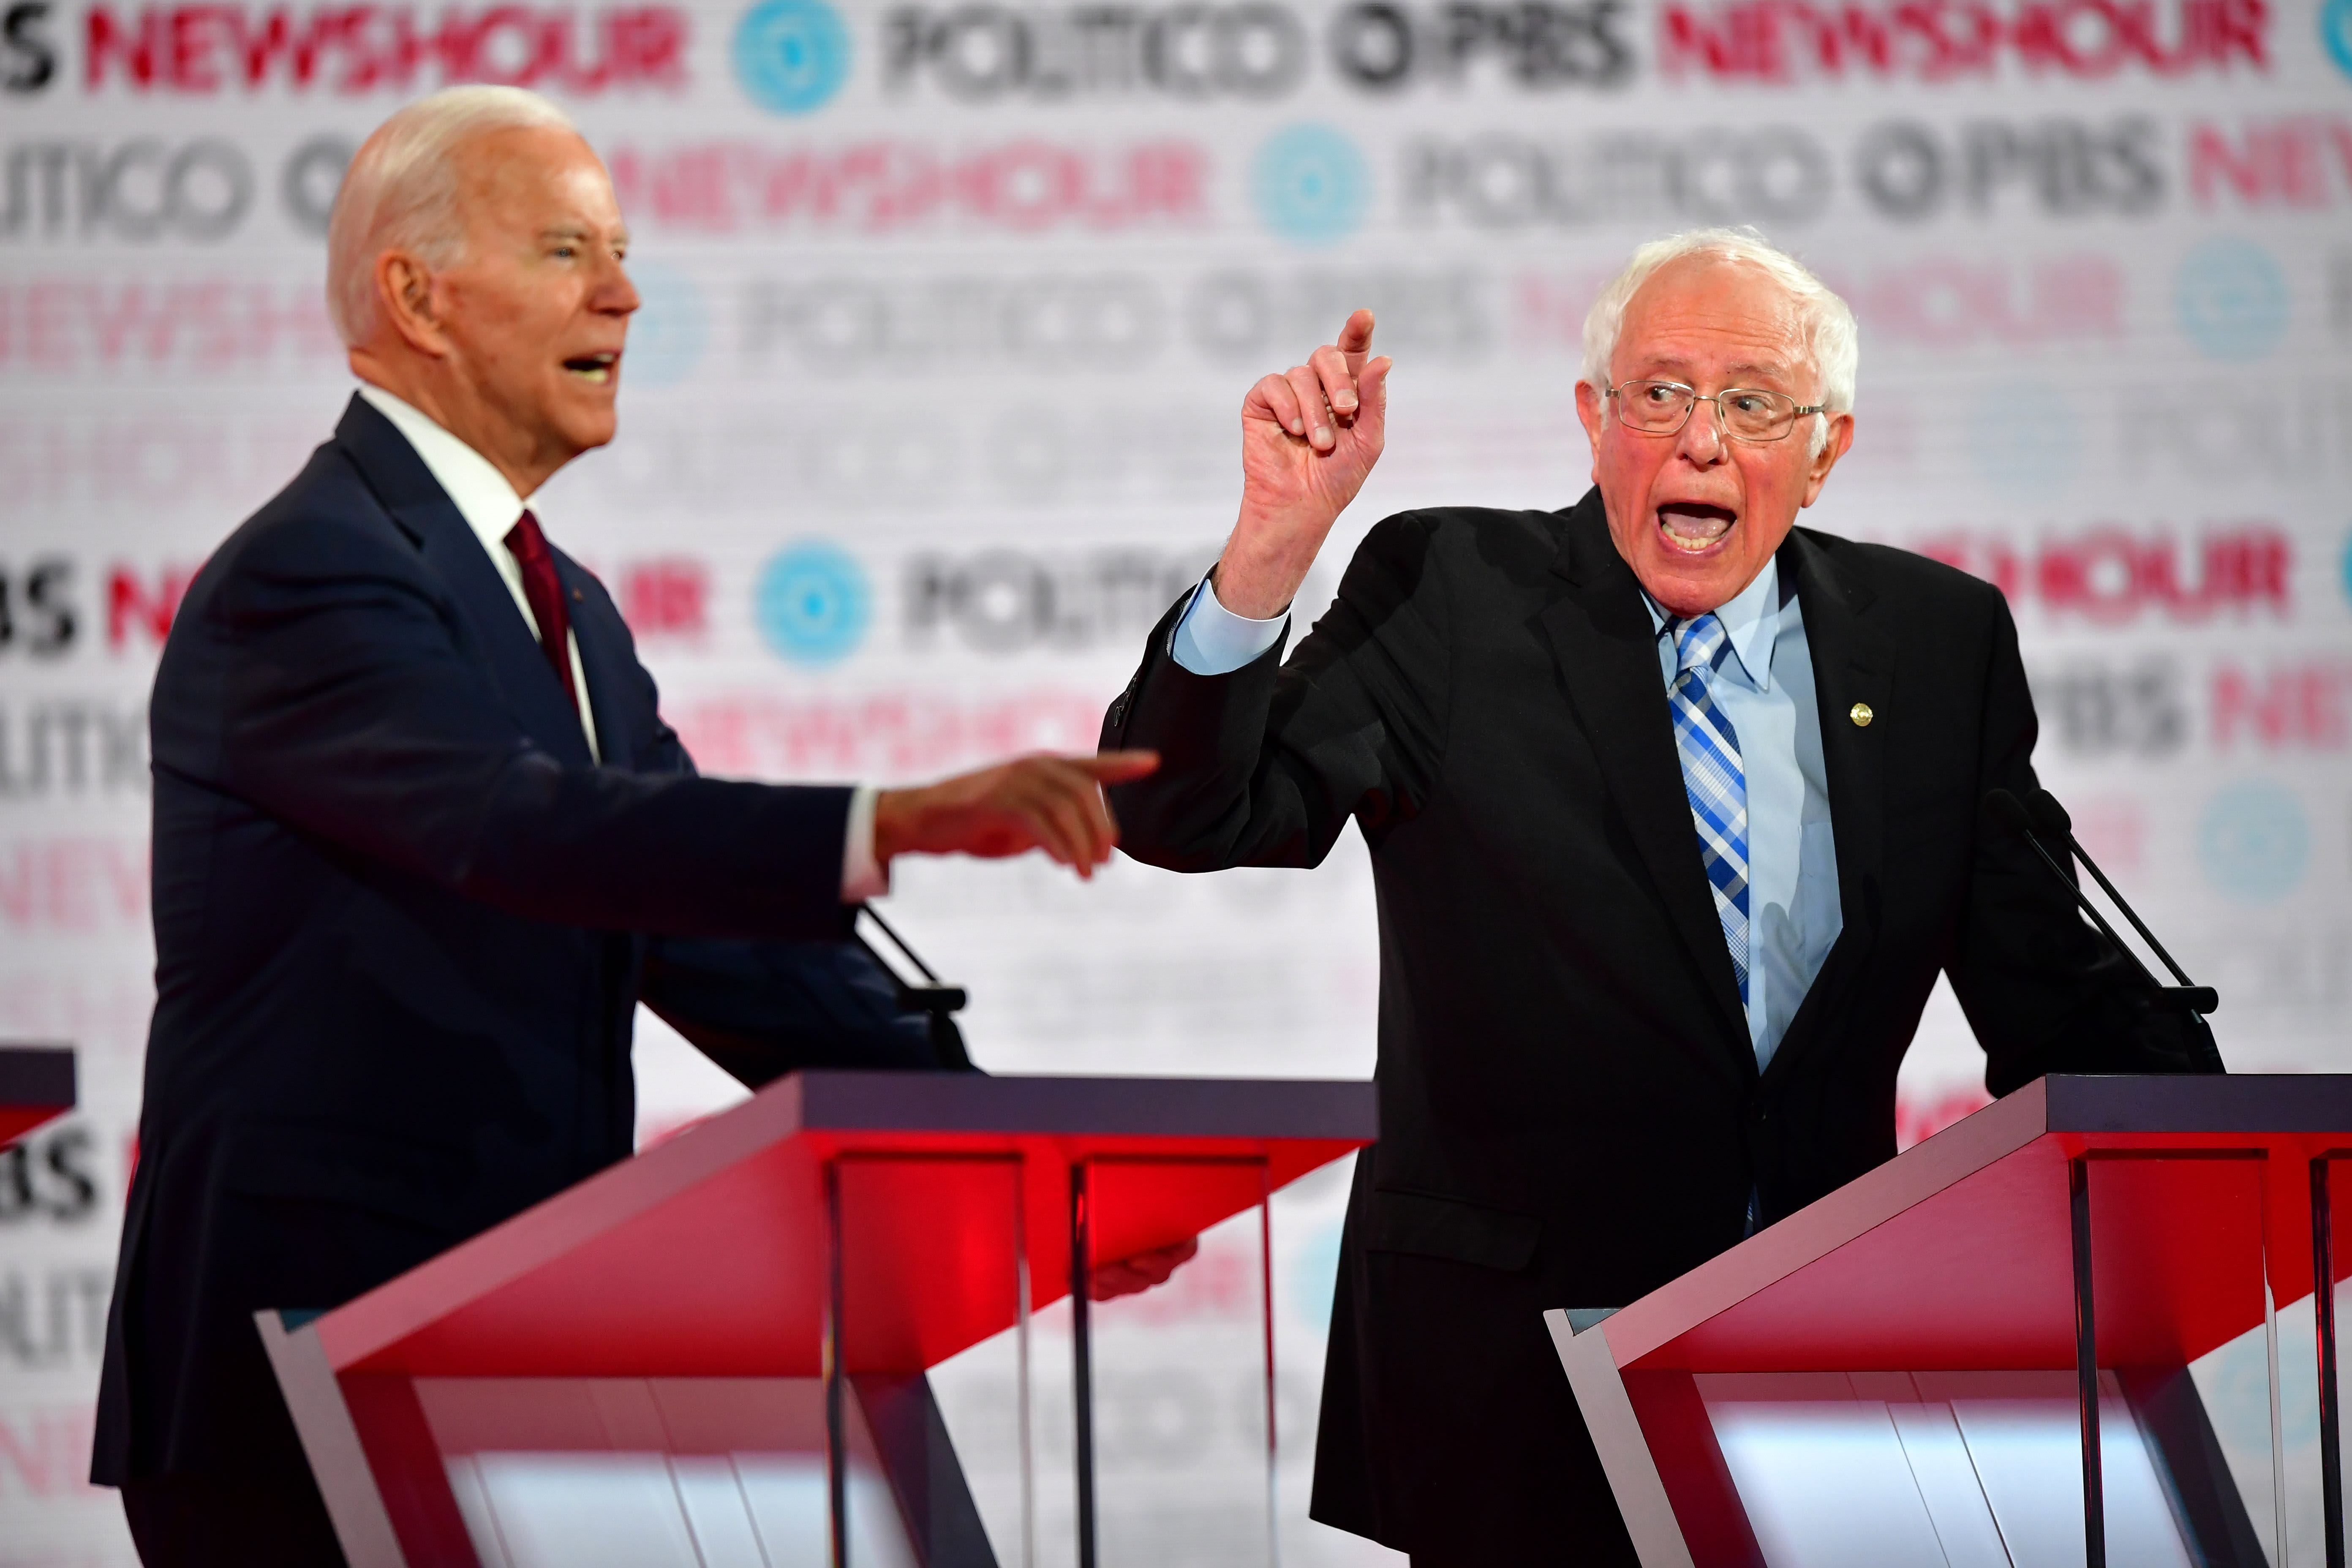 Polls show a logjam at the top of the 2020 Democratic field in Iowa and New Hampshire